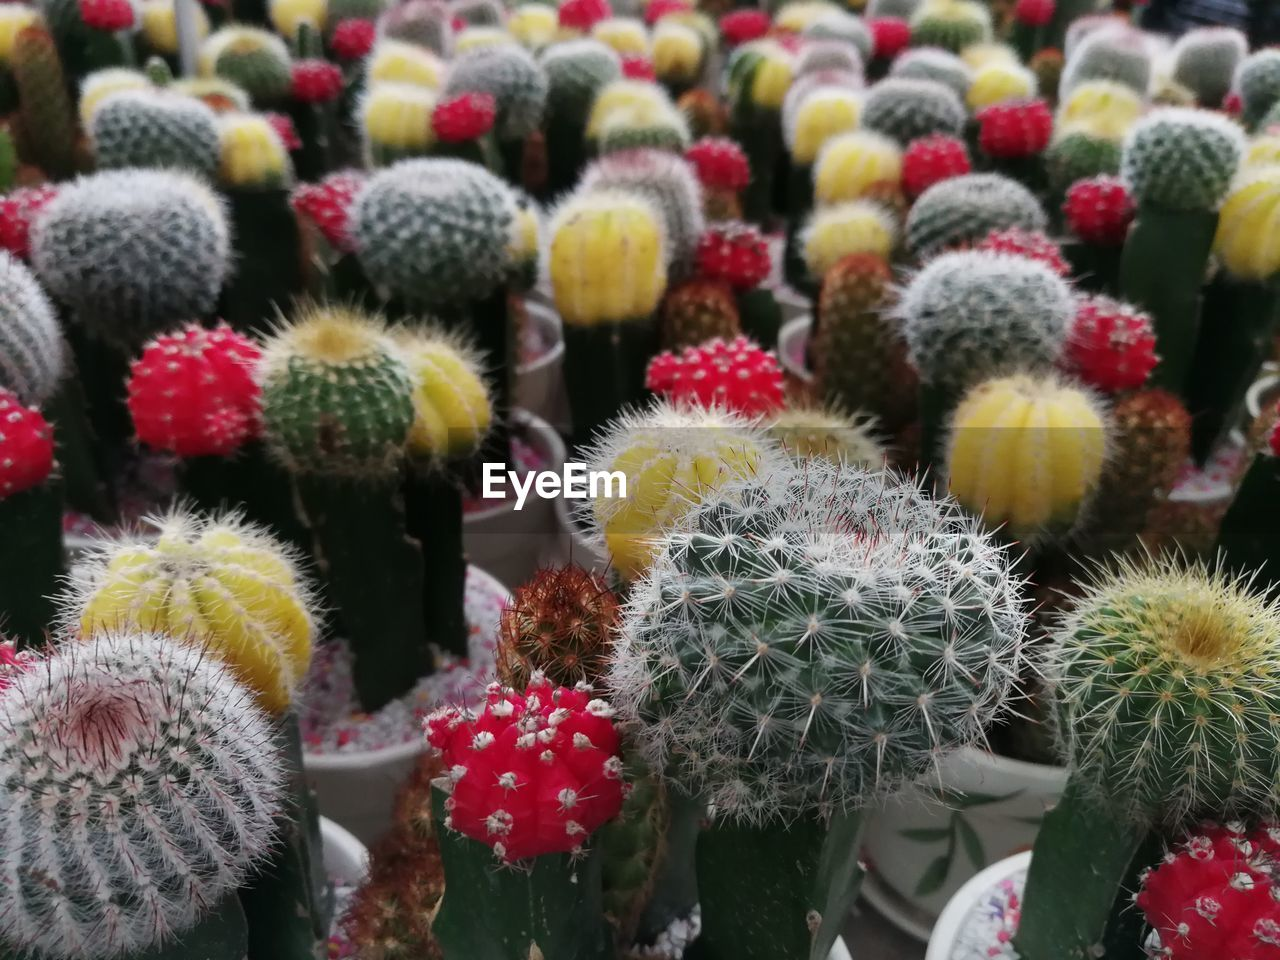 cactus, succulent plant, growth, close-up, flower, plant, no people, flowering plant, thorn, beauty in nature, focus on foreground, freshness, day, nature, full frame, flower head, spiked, green color, backgrounds, barrel cactus, outdoors, softness